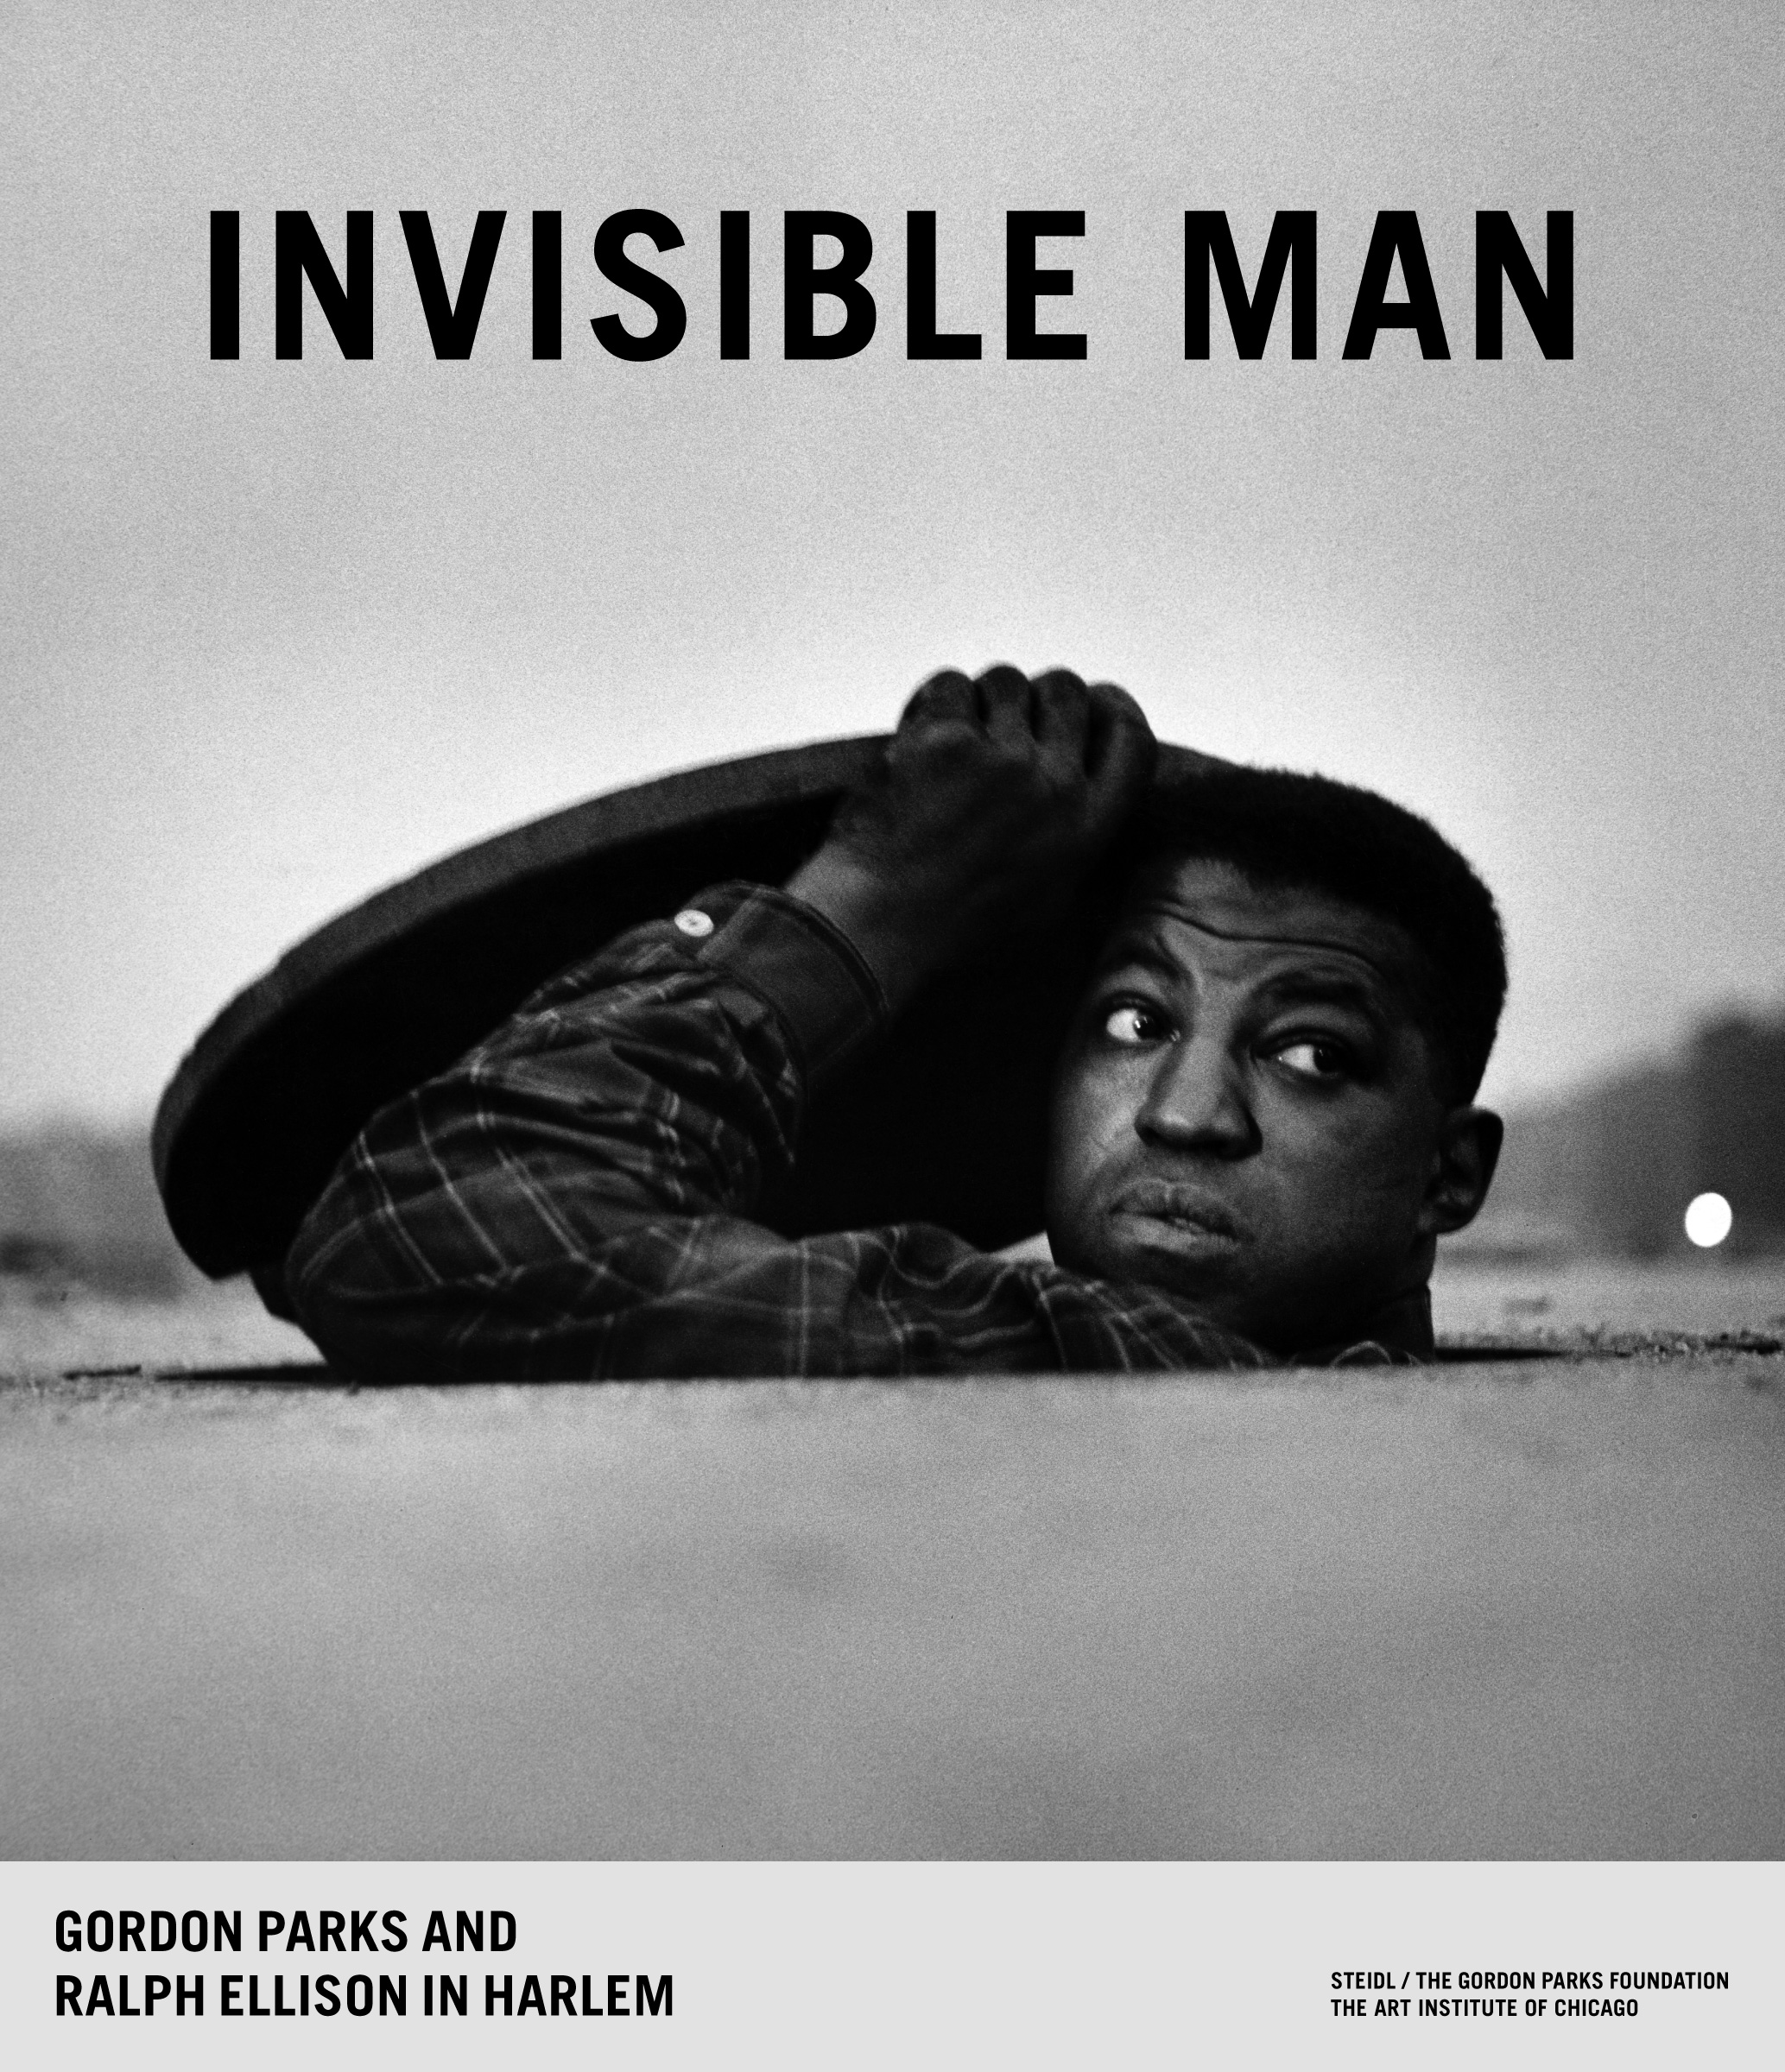 Image Above: ©The Gordon Parks Foundation. 'INVISIBLE MAN,' Book Cover / Courtesy of The Gordon Parks Foundation/The Art Institute of Chicago/Steidl